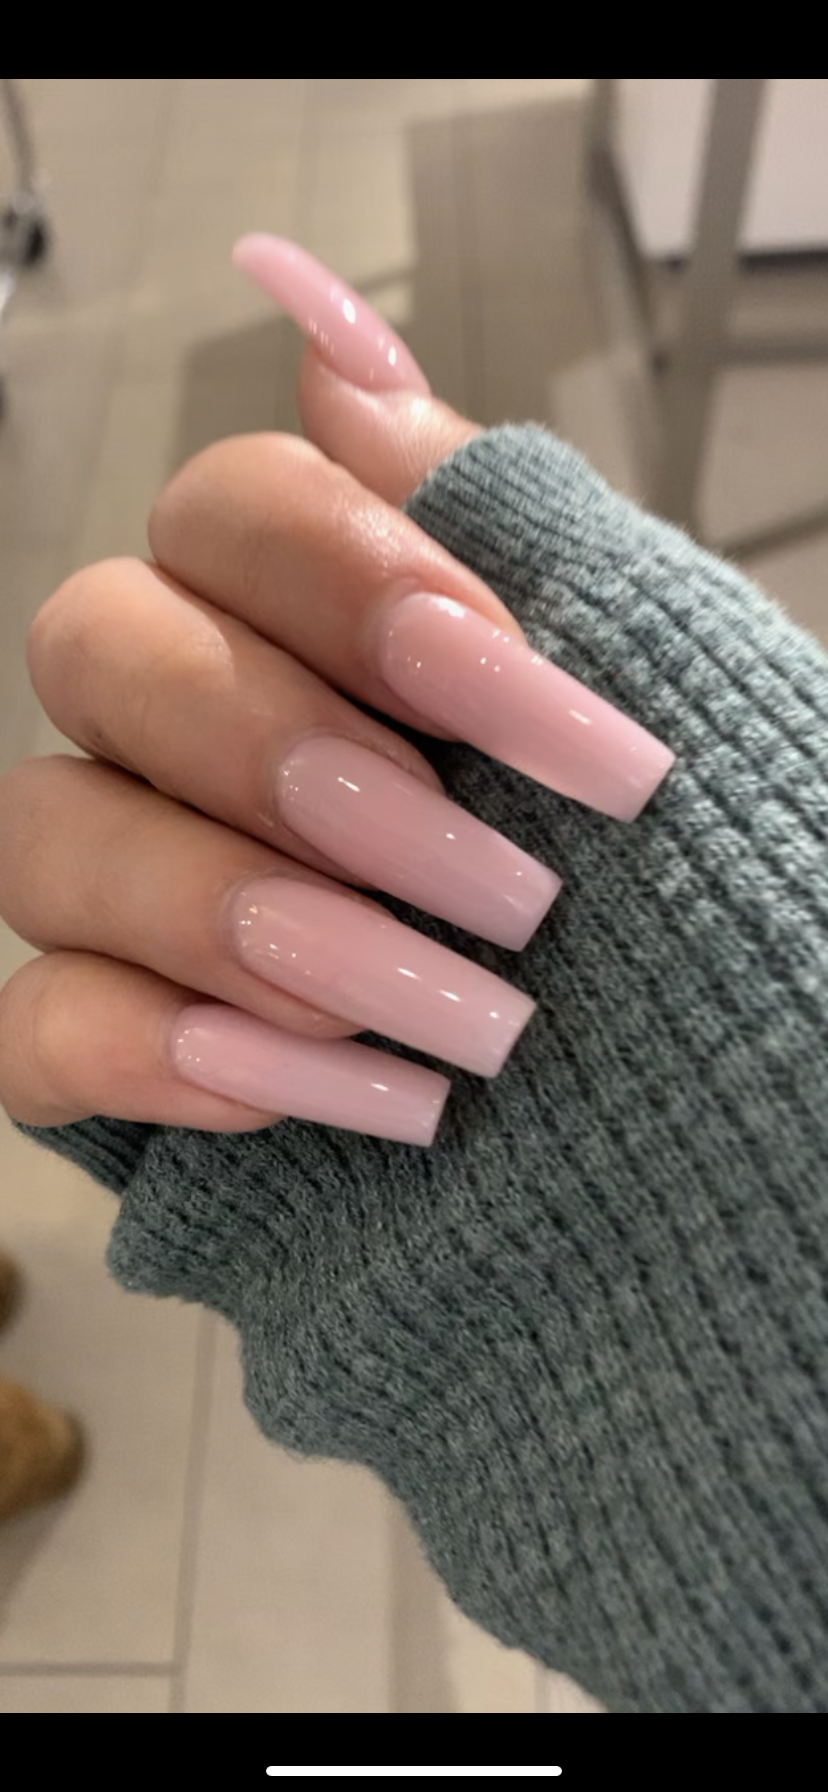 Pin On Coffin Nails Long Classy In 2020 Square Acrylic Nails Long Square Acrylic Nails Purple Acrylic Nails